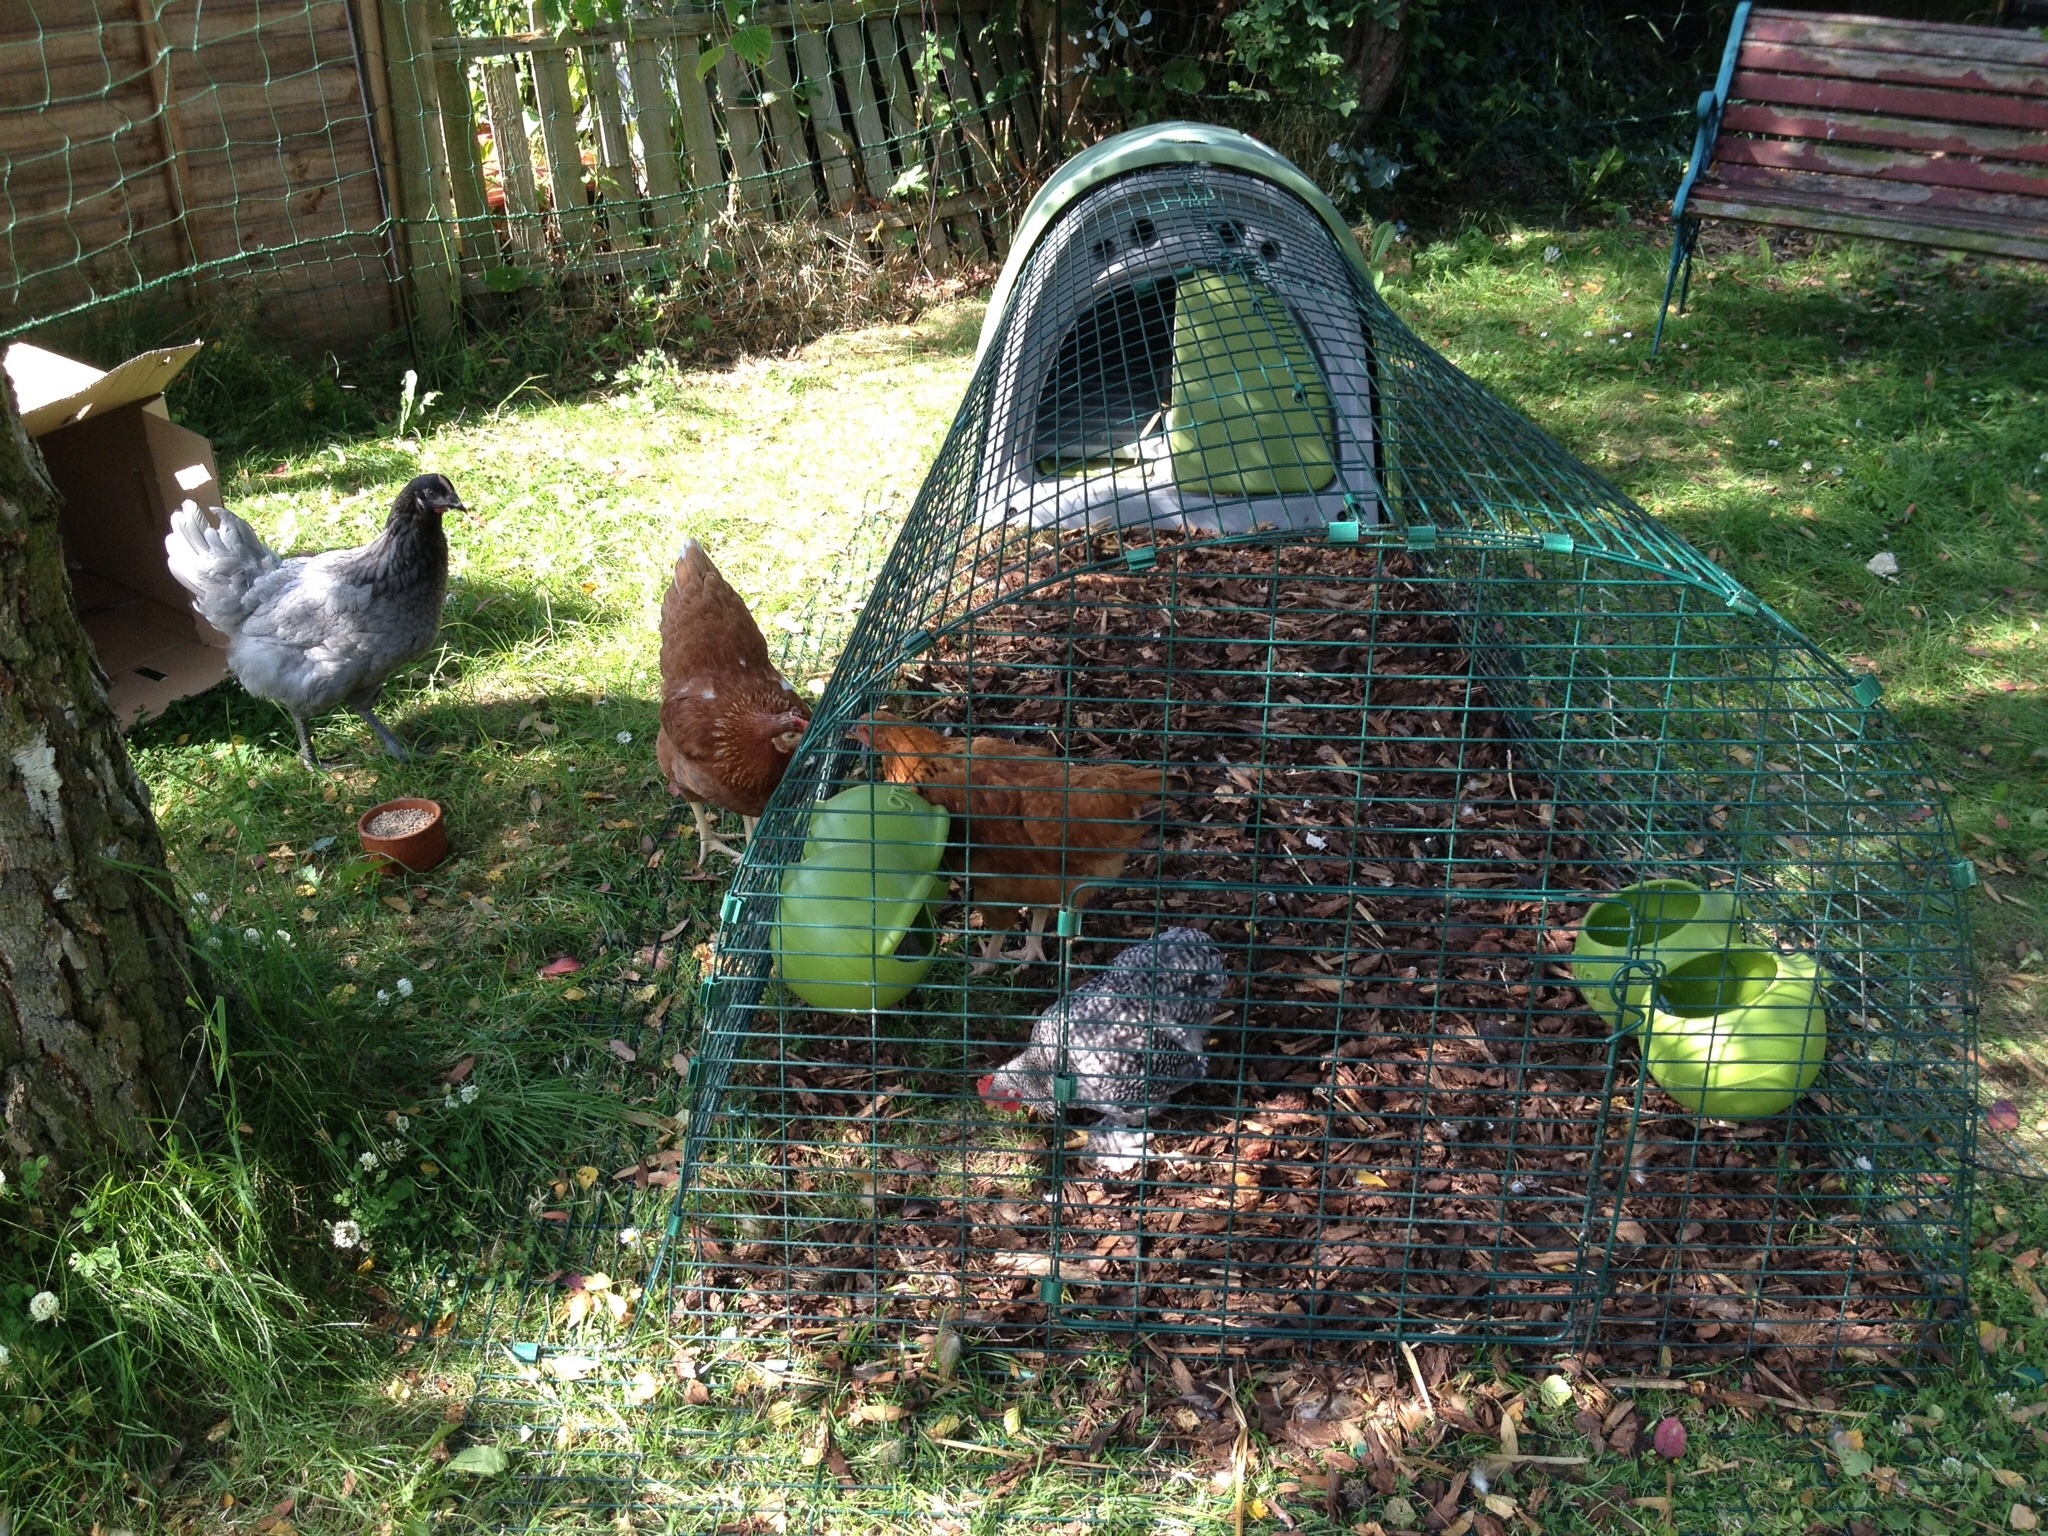 Emilia Taylor's hens love searching for worms inside their Eglu Run